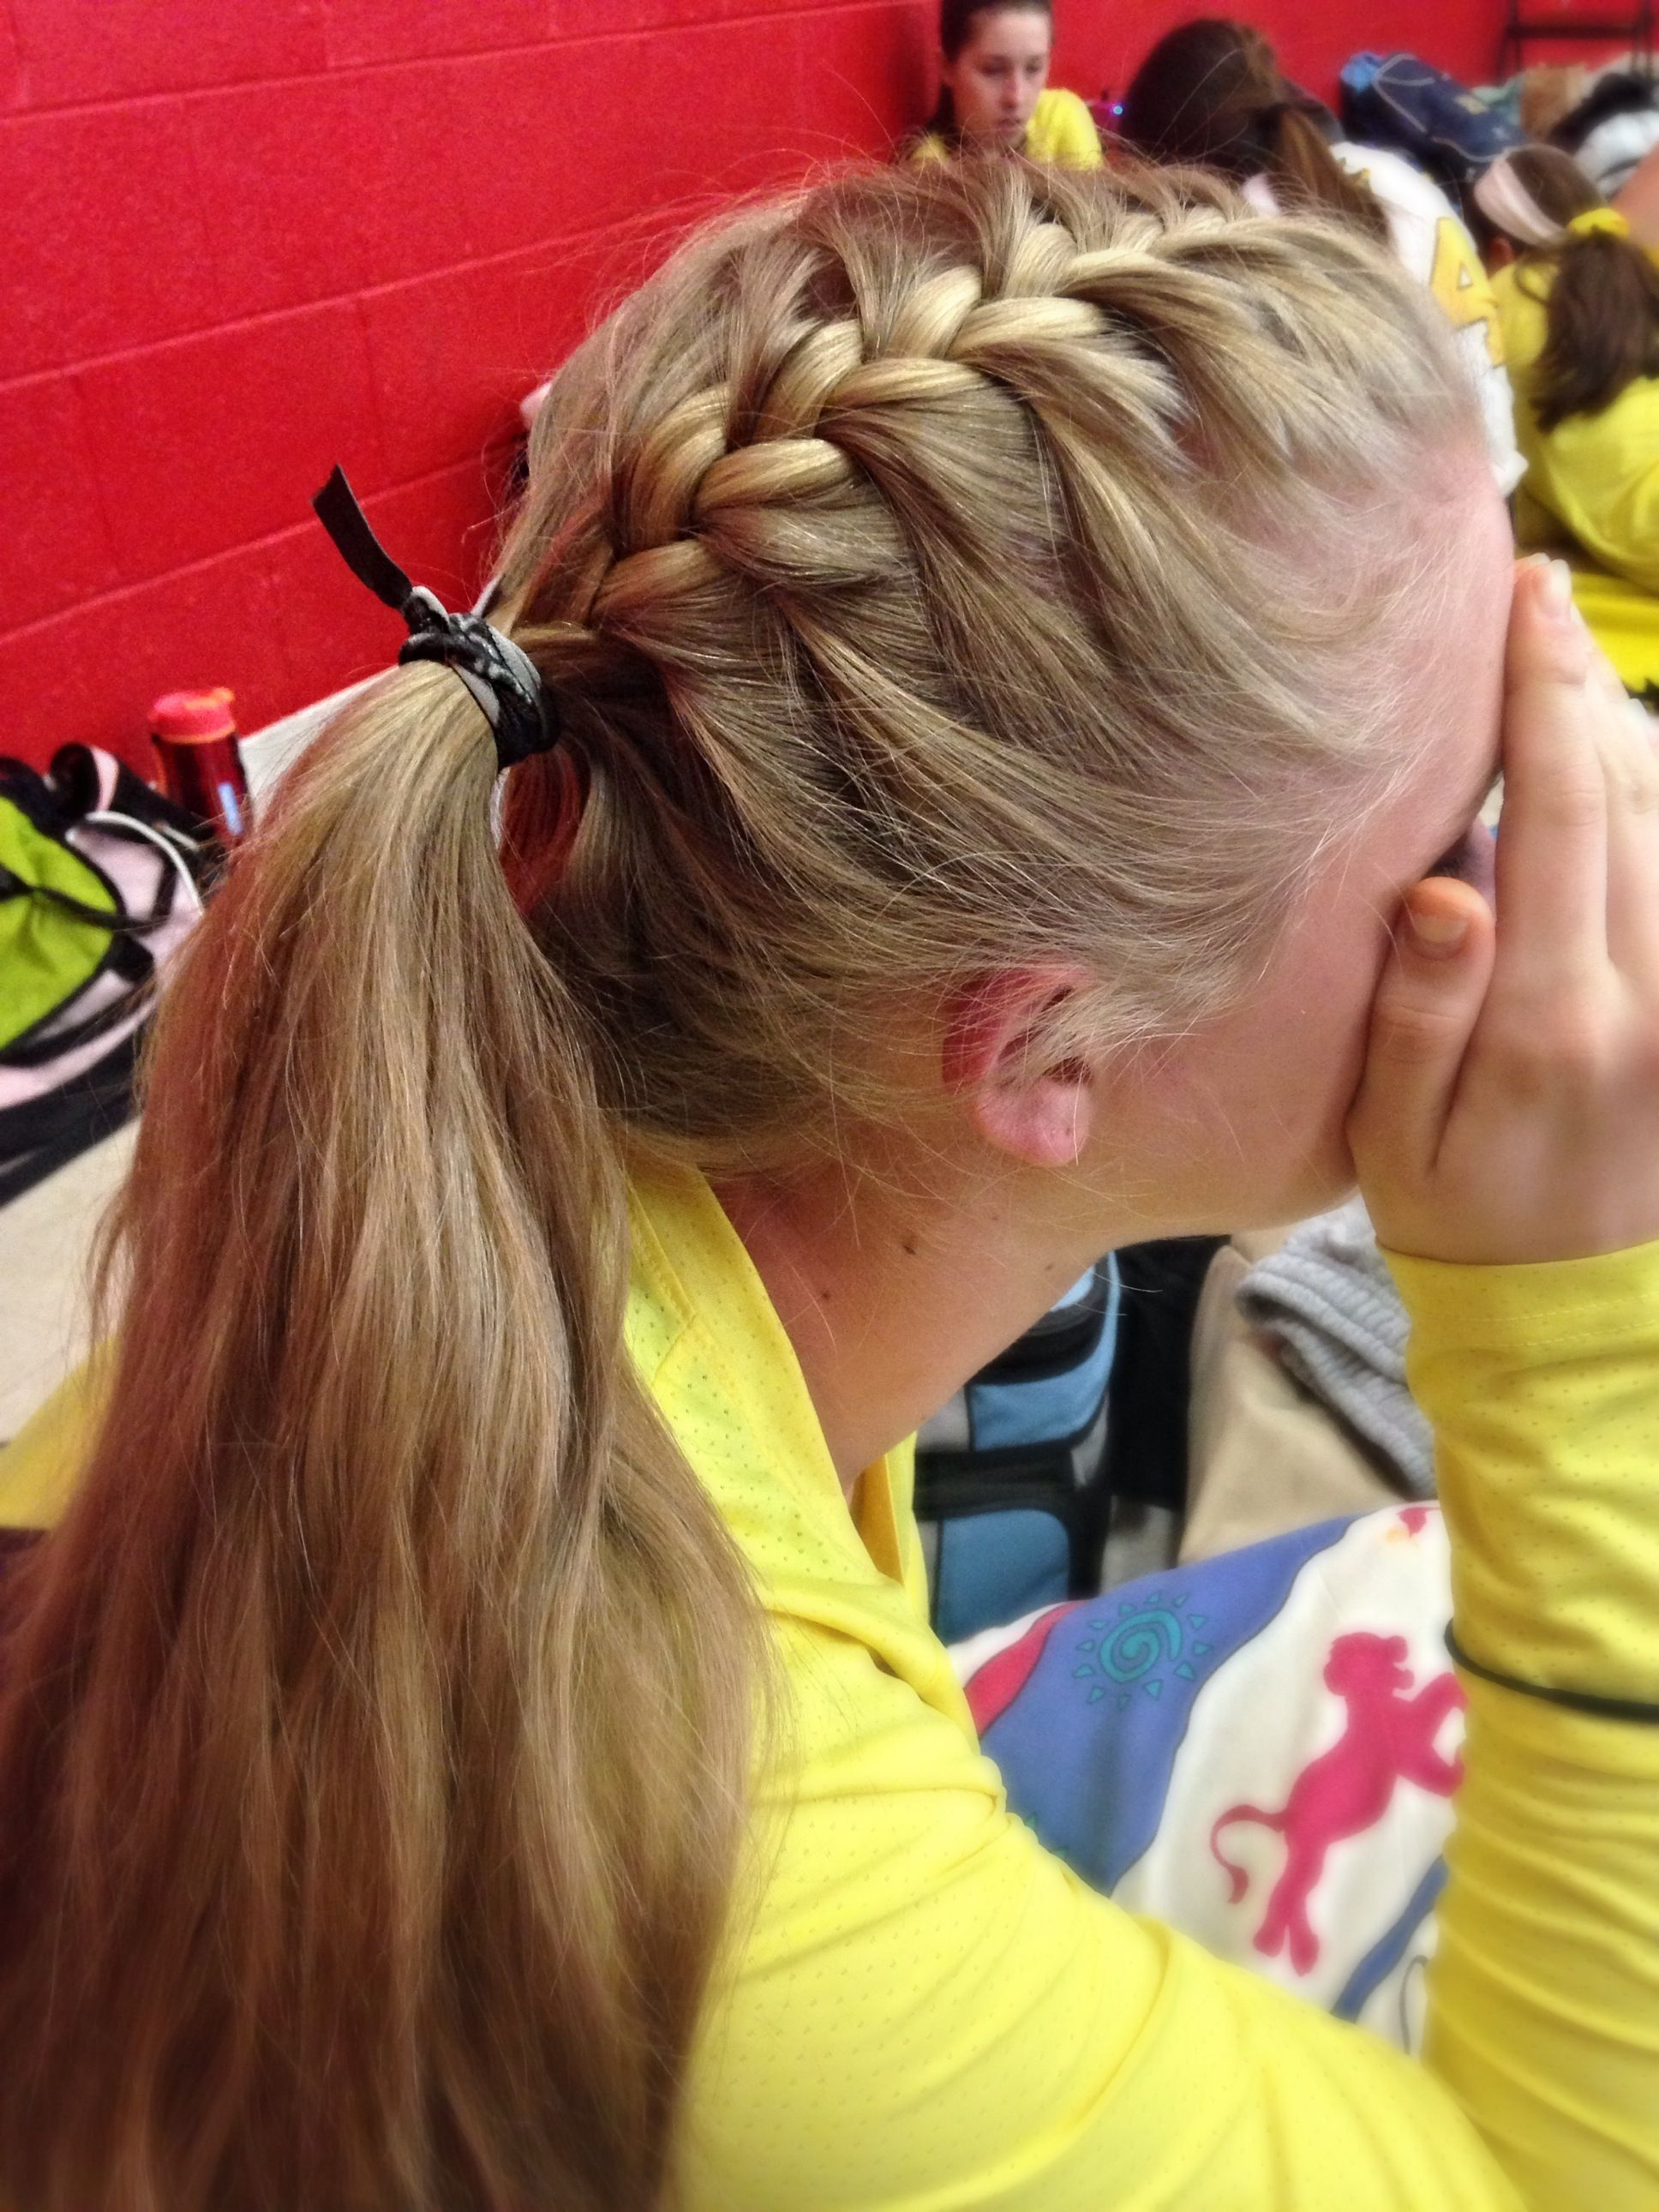 Volleyball Hair Volleyball Hairstyles Sports Hairstyles Track Hairstyles